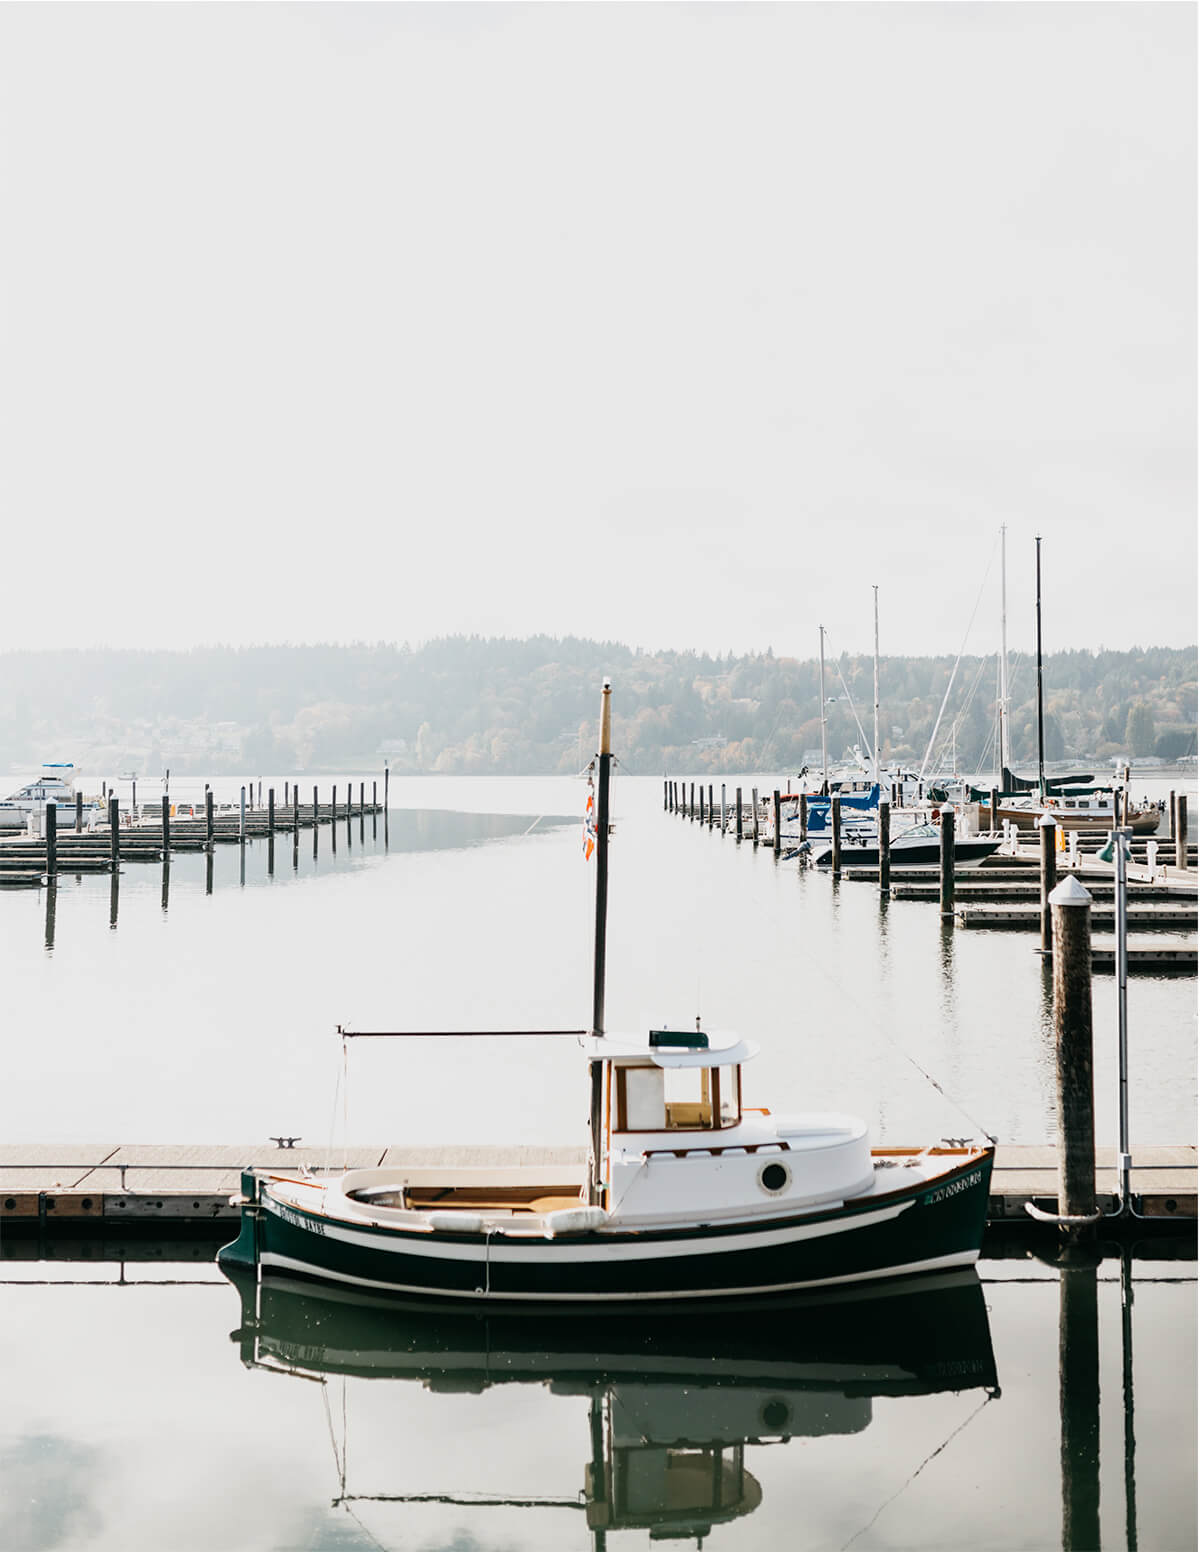 A small boat docked off the coast of Poulsbo, Washington